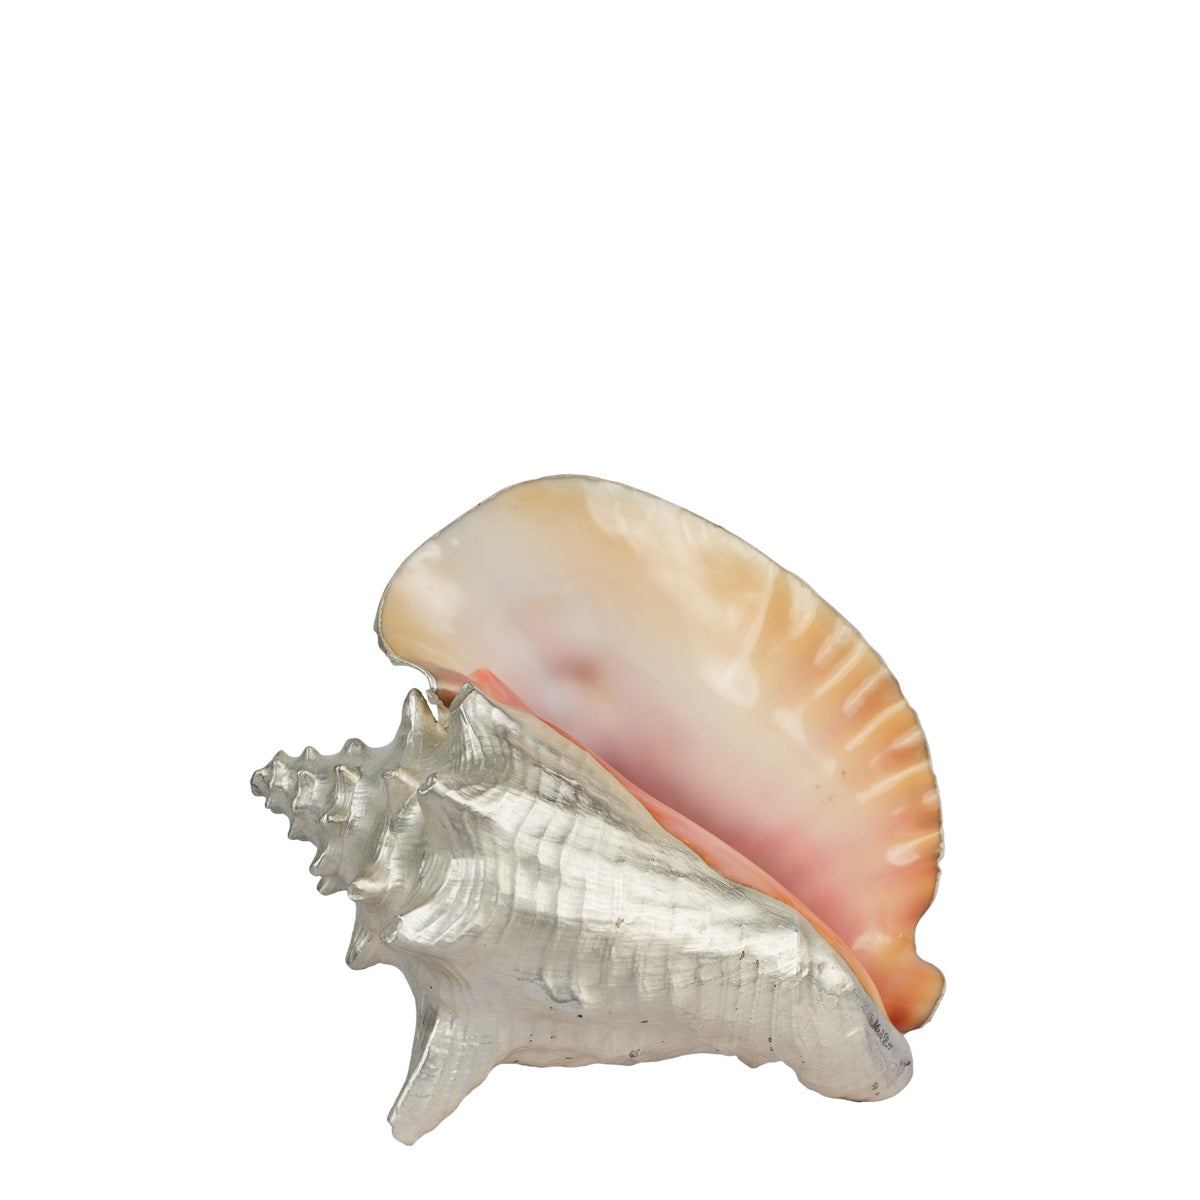 Large Conch Shell in Fine Silver